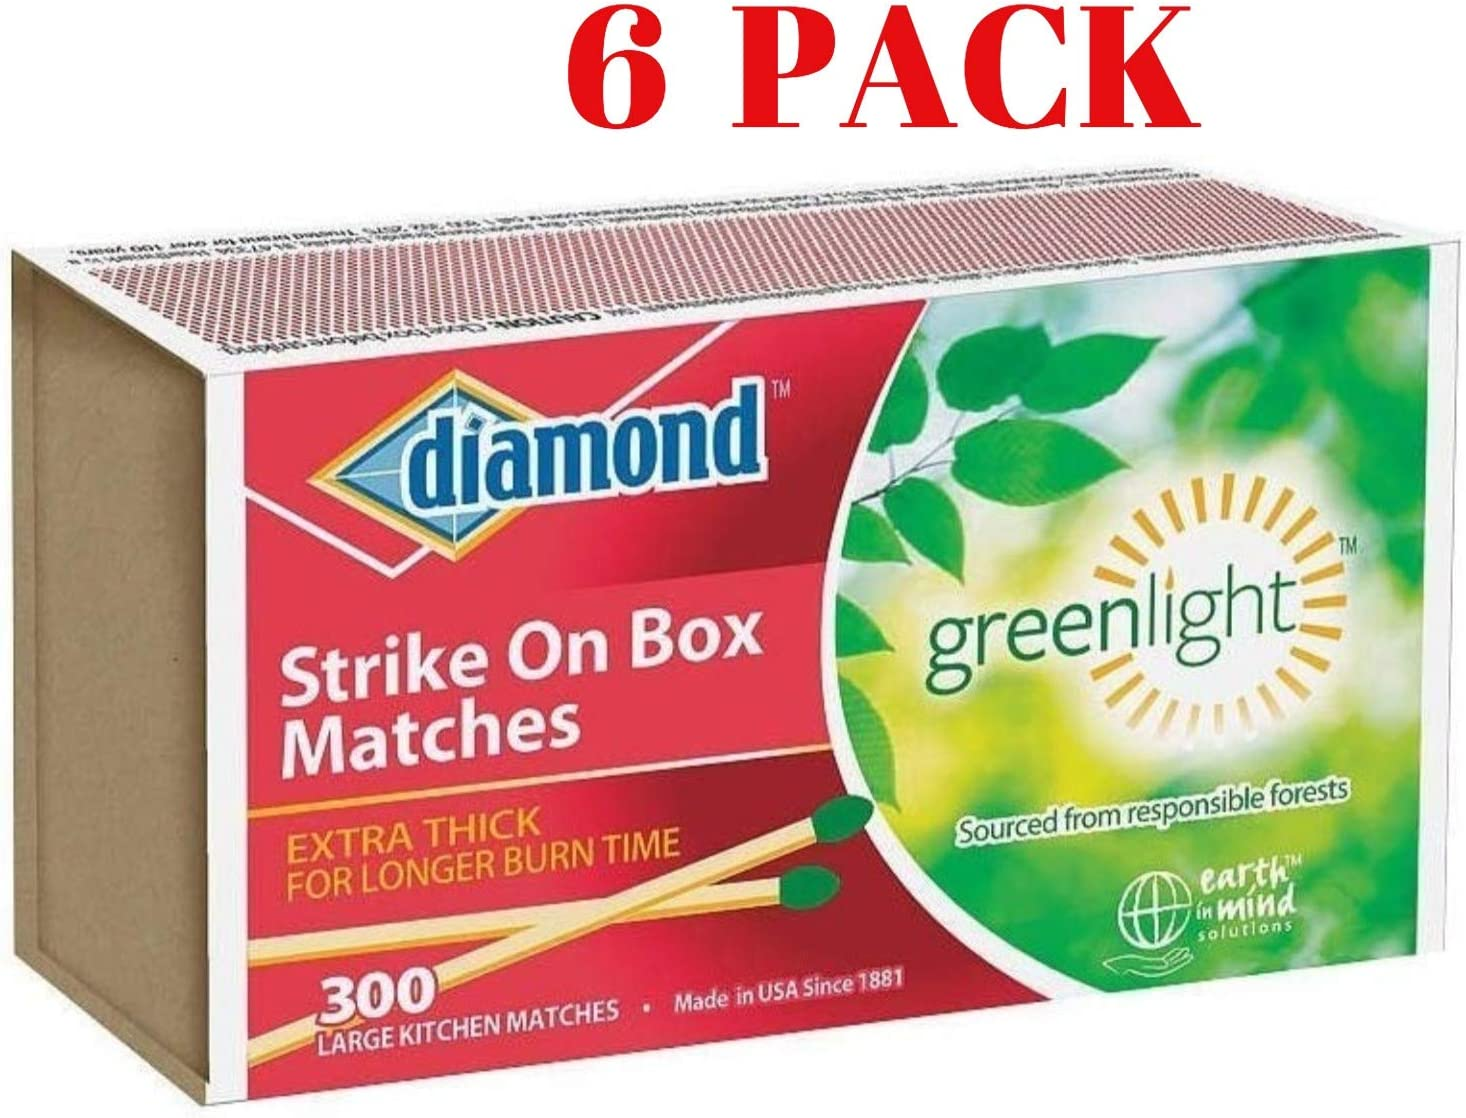 SELECT DIAMOND STRIKE ON BOX SAFETY WOODEN MATCHES Small or Large Matches